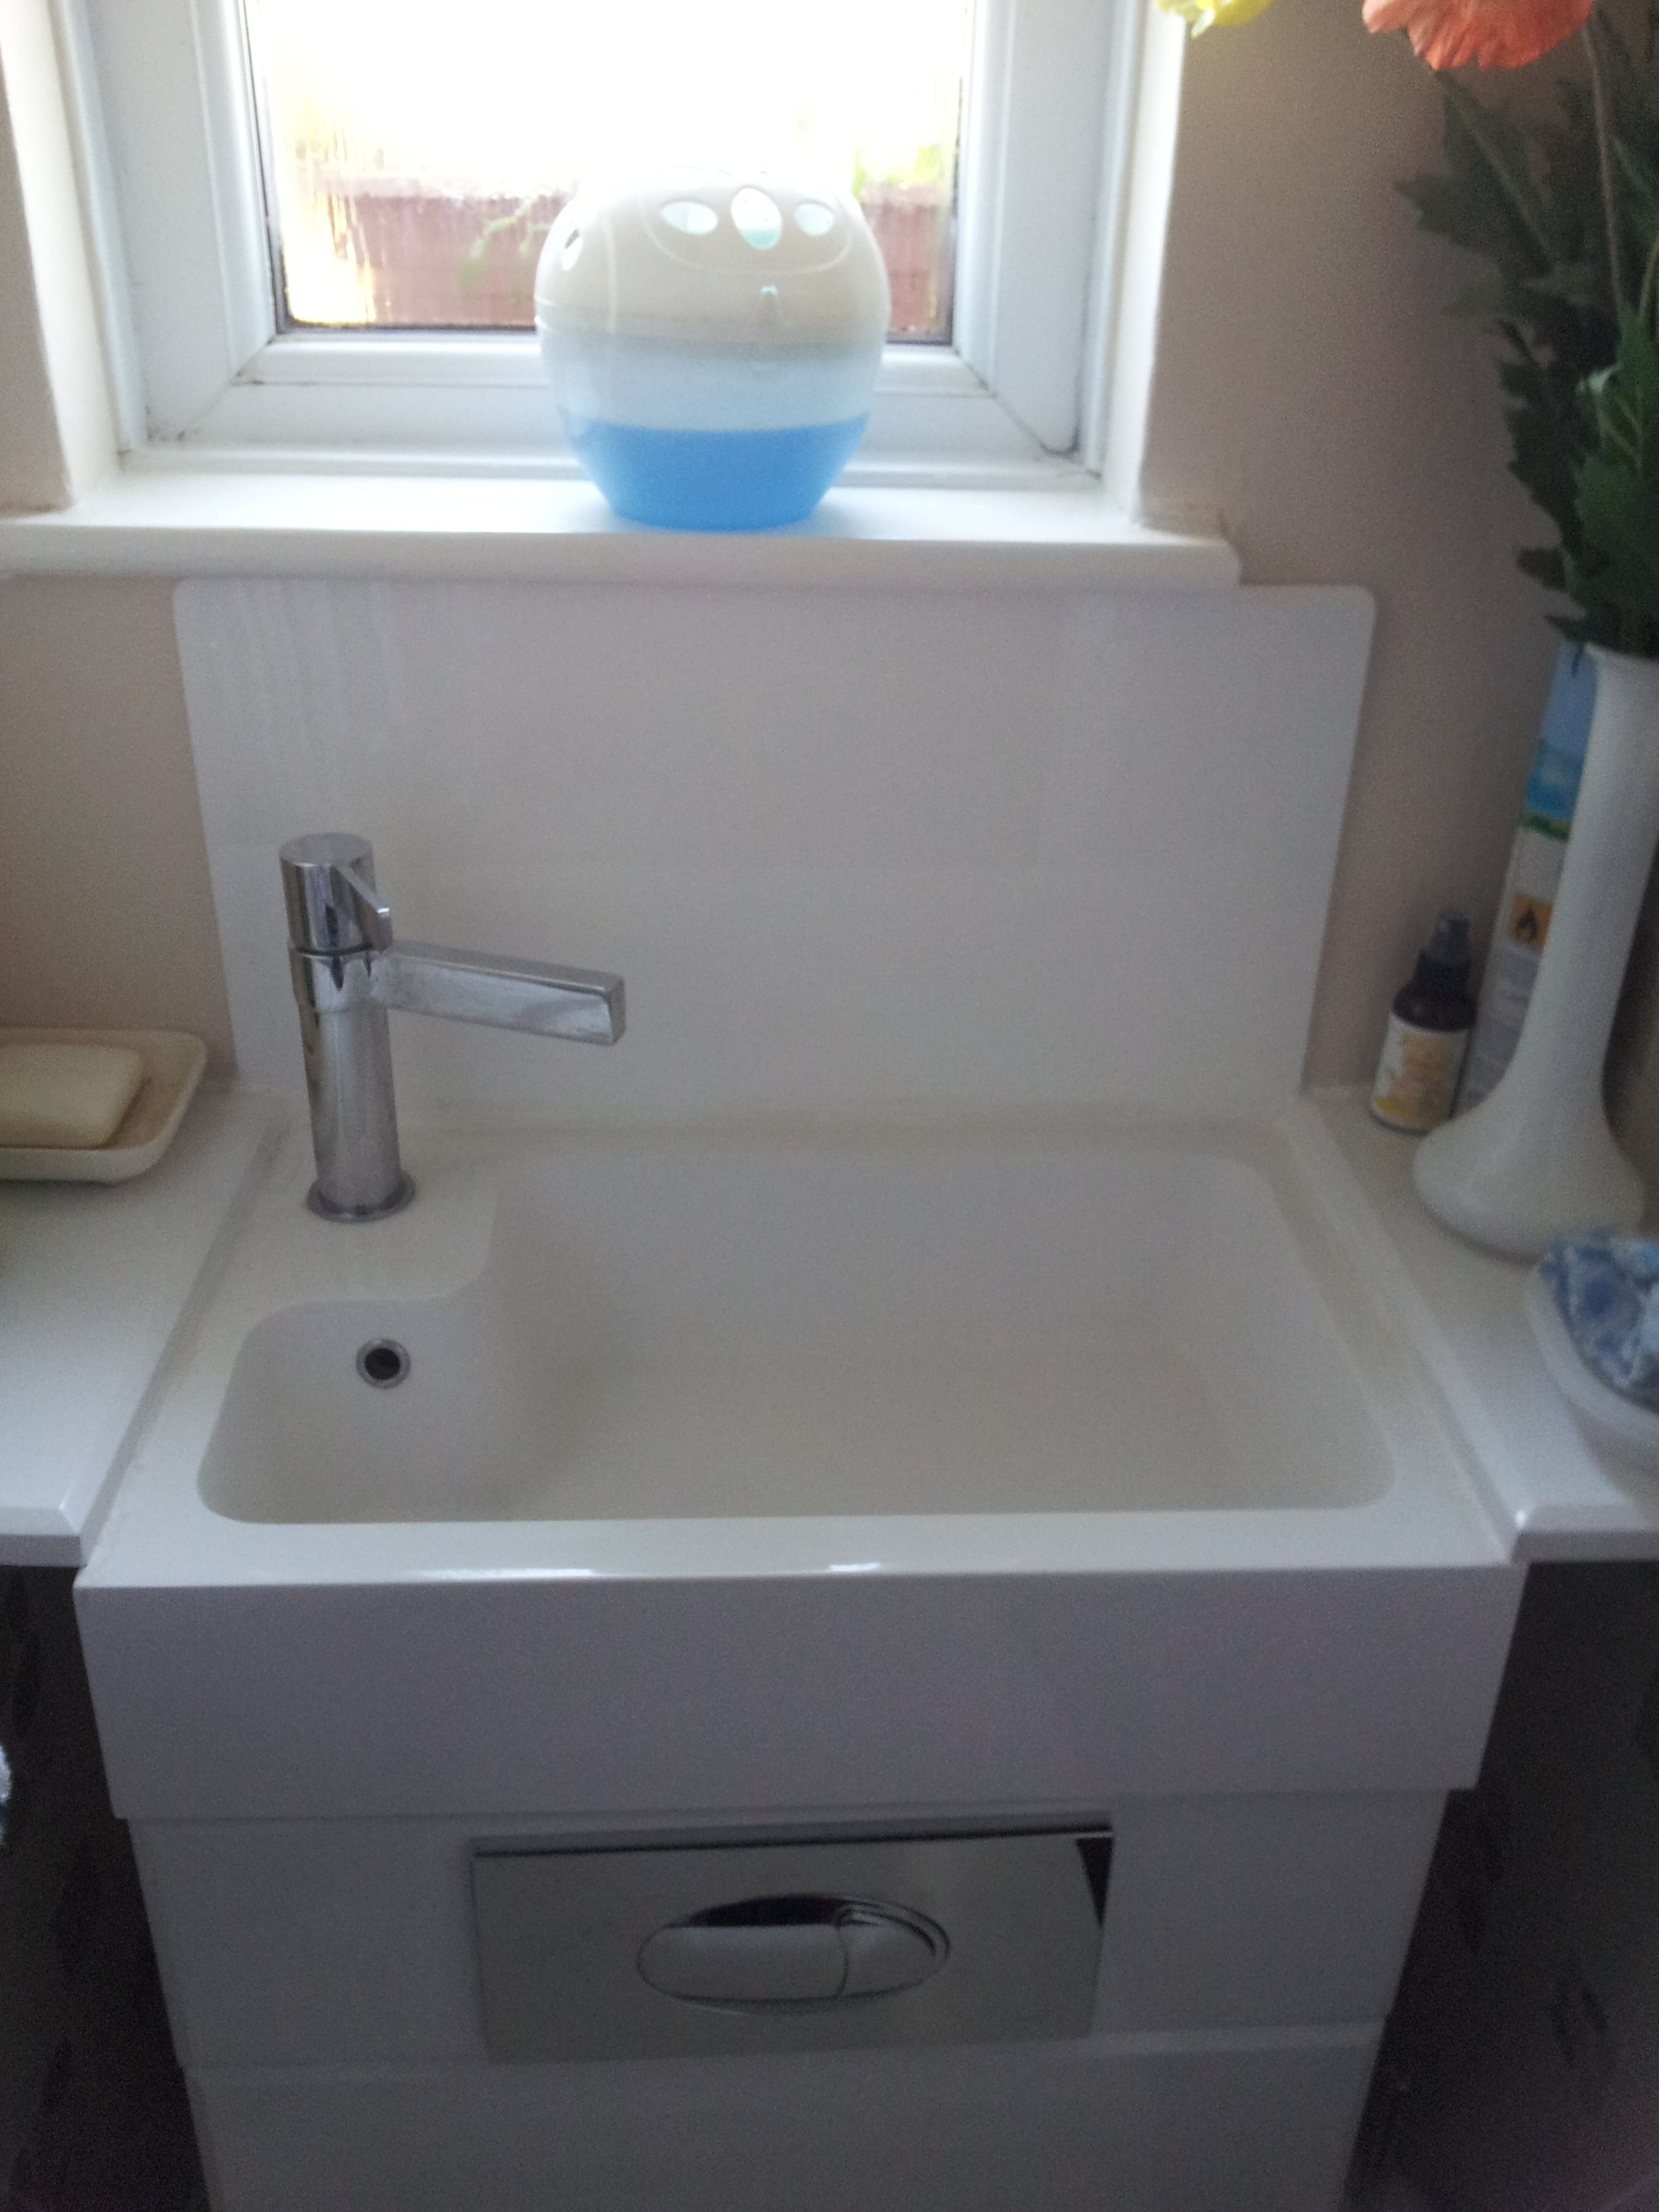 A Small Piece Of White Acrylic Makes A Perfect Splashback For A Small Sink  Area